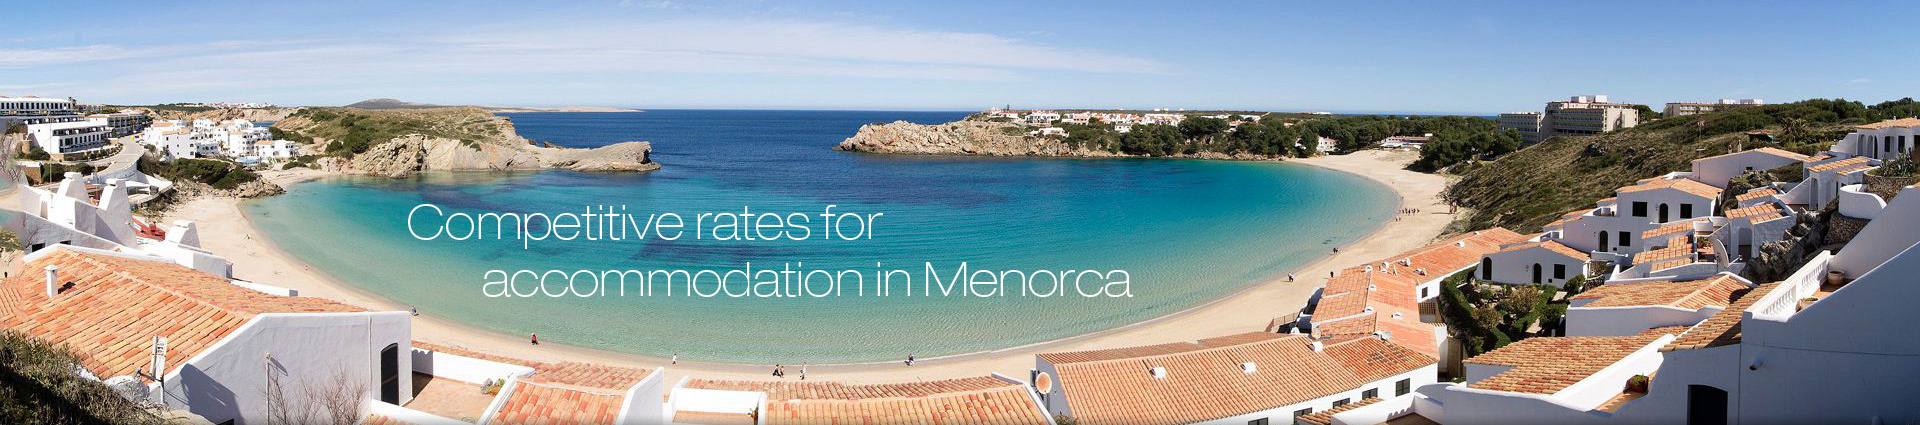 Competitive rates for accommodation in Menorca - Menorca accommodation